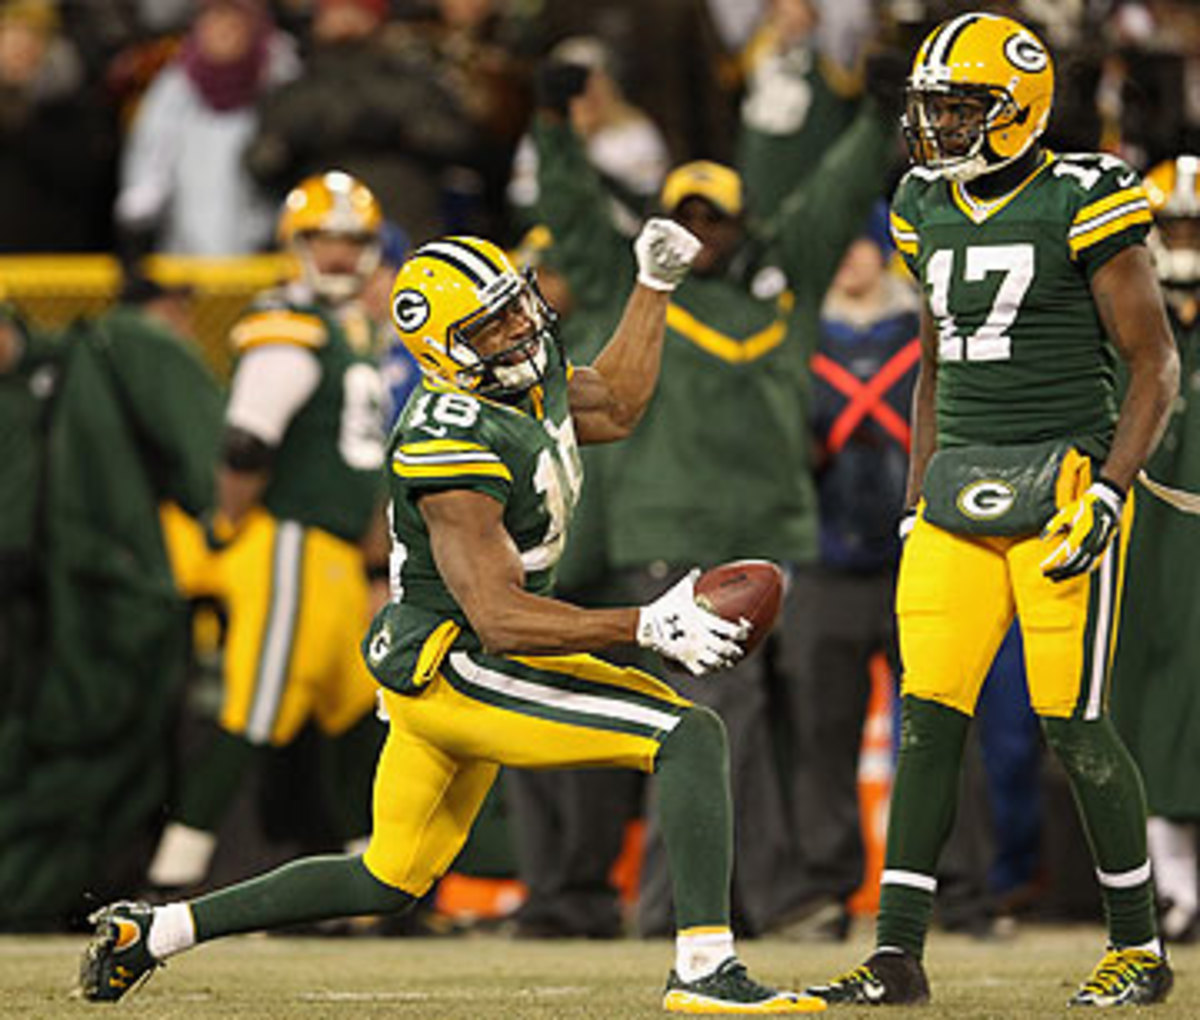 Randall Cobb's clutch grab to convert a first down sealed the win for the Packers. (Christian Petersen/Getty Images)